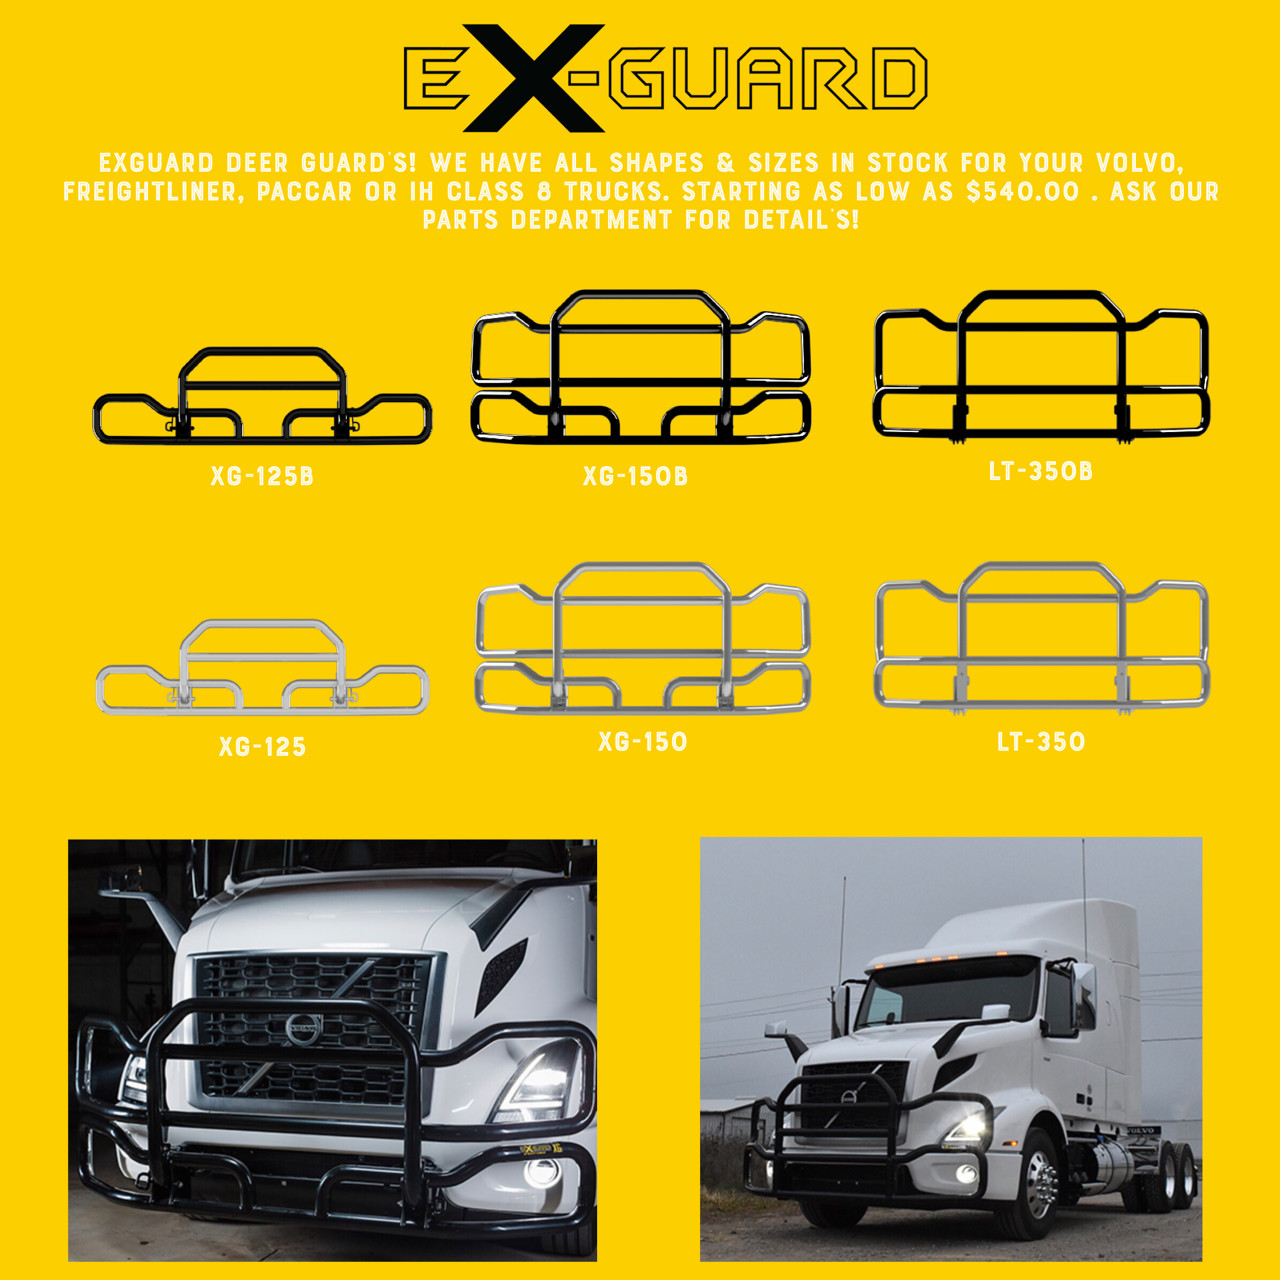 Ex-Guard Deer Guards! We have all shapes and sizes in stock for your Volvo, Freightliner, Paccar or IH Class 8 Trucks. Starting as low as $540.00. Ask our parts department for details!